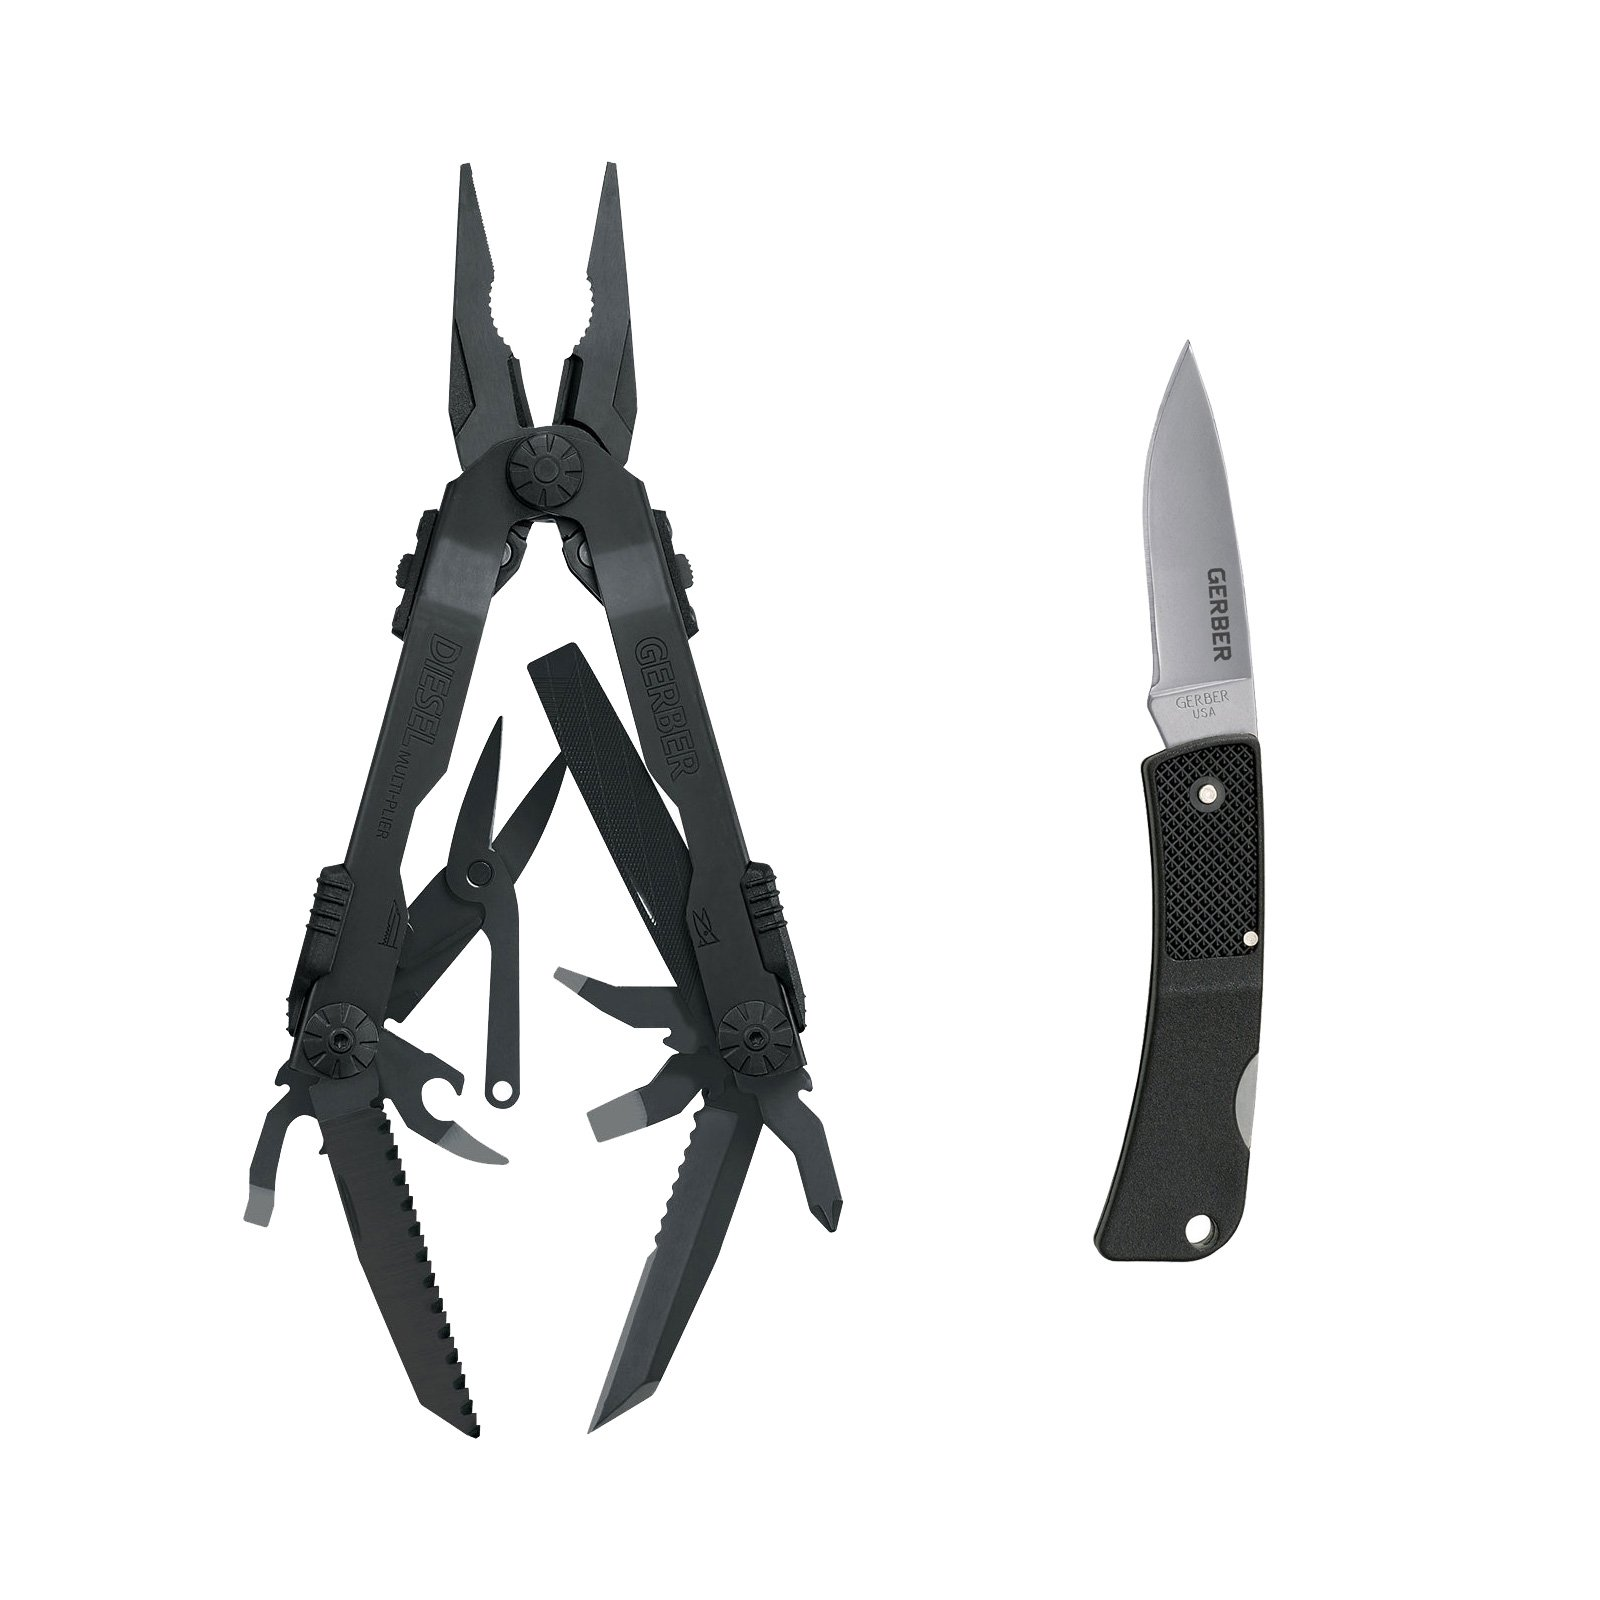 Gerber Diesel Multi-Tool Black w/ Gerber Ultralight LST Lock Blade Fine Edge Knife